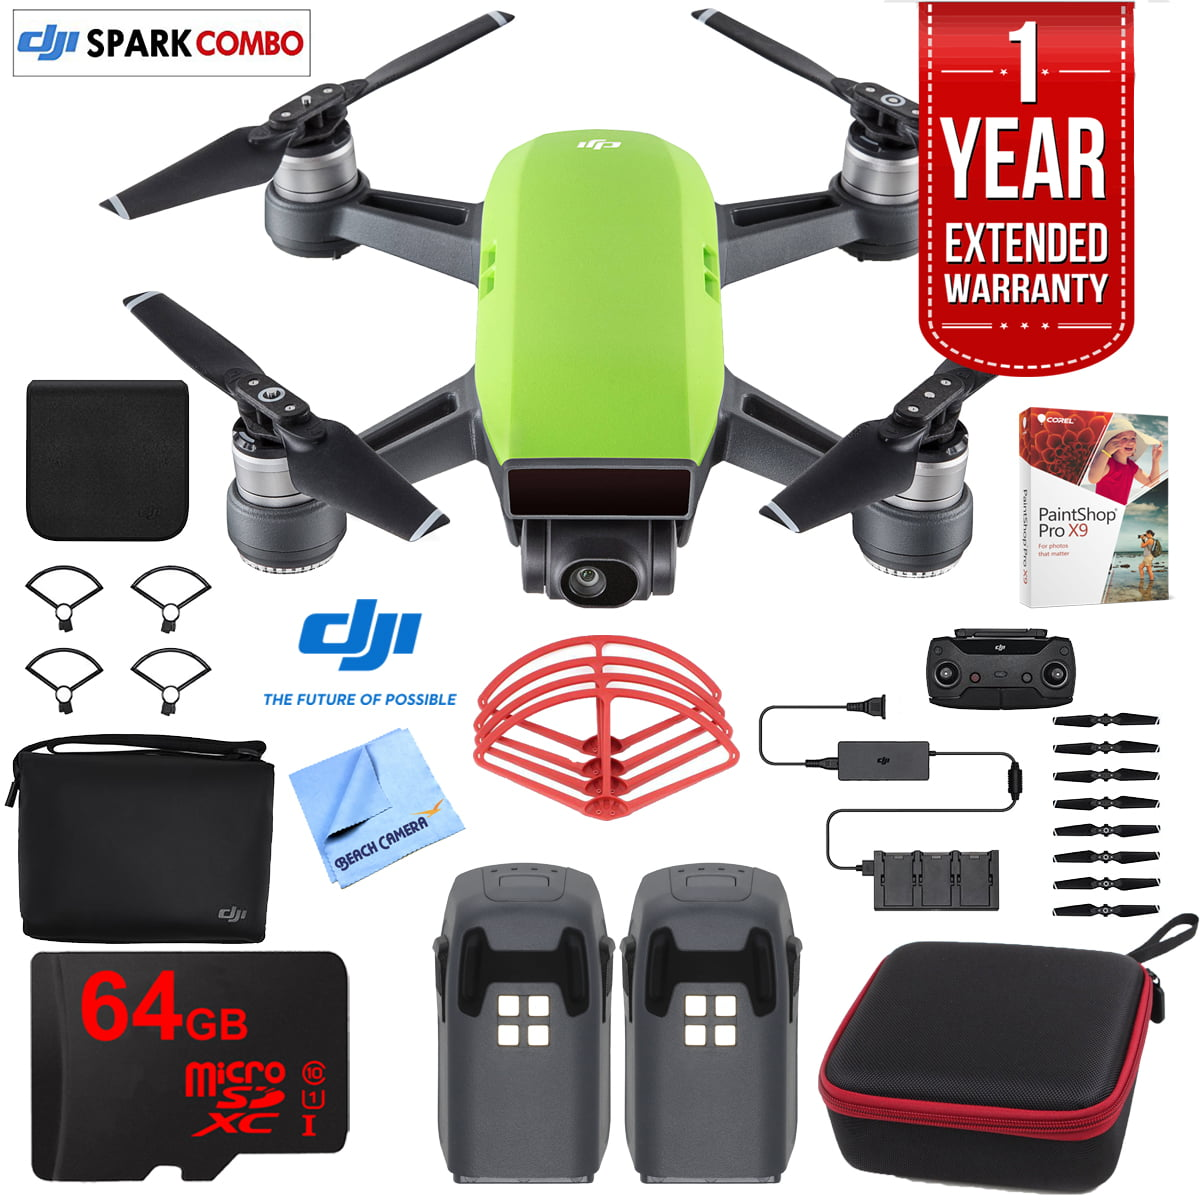 DJI SPARK Fly More Drone Combo (Meadow Green) With Custom Hard Case, 64GB High Speed Card, Corel Paint Version... by DJI